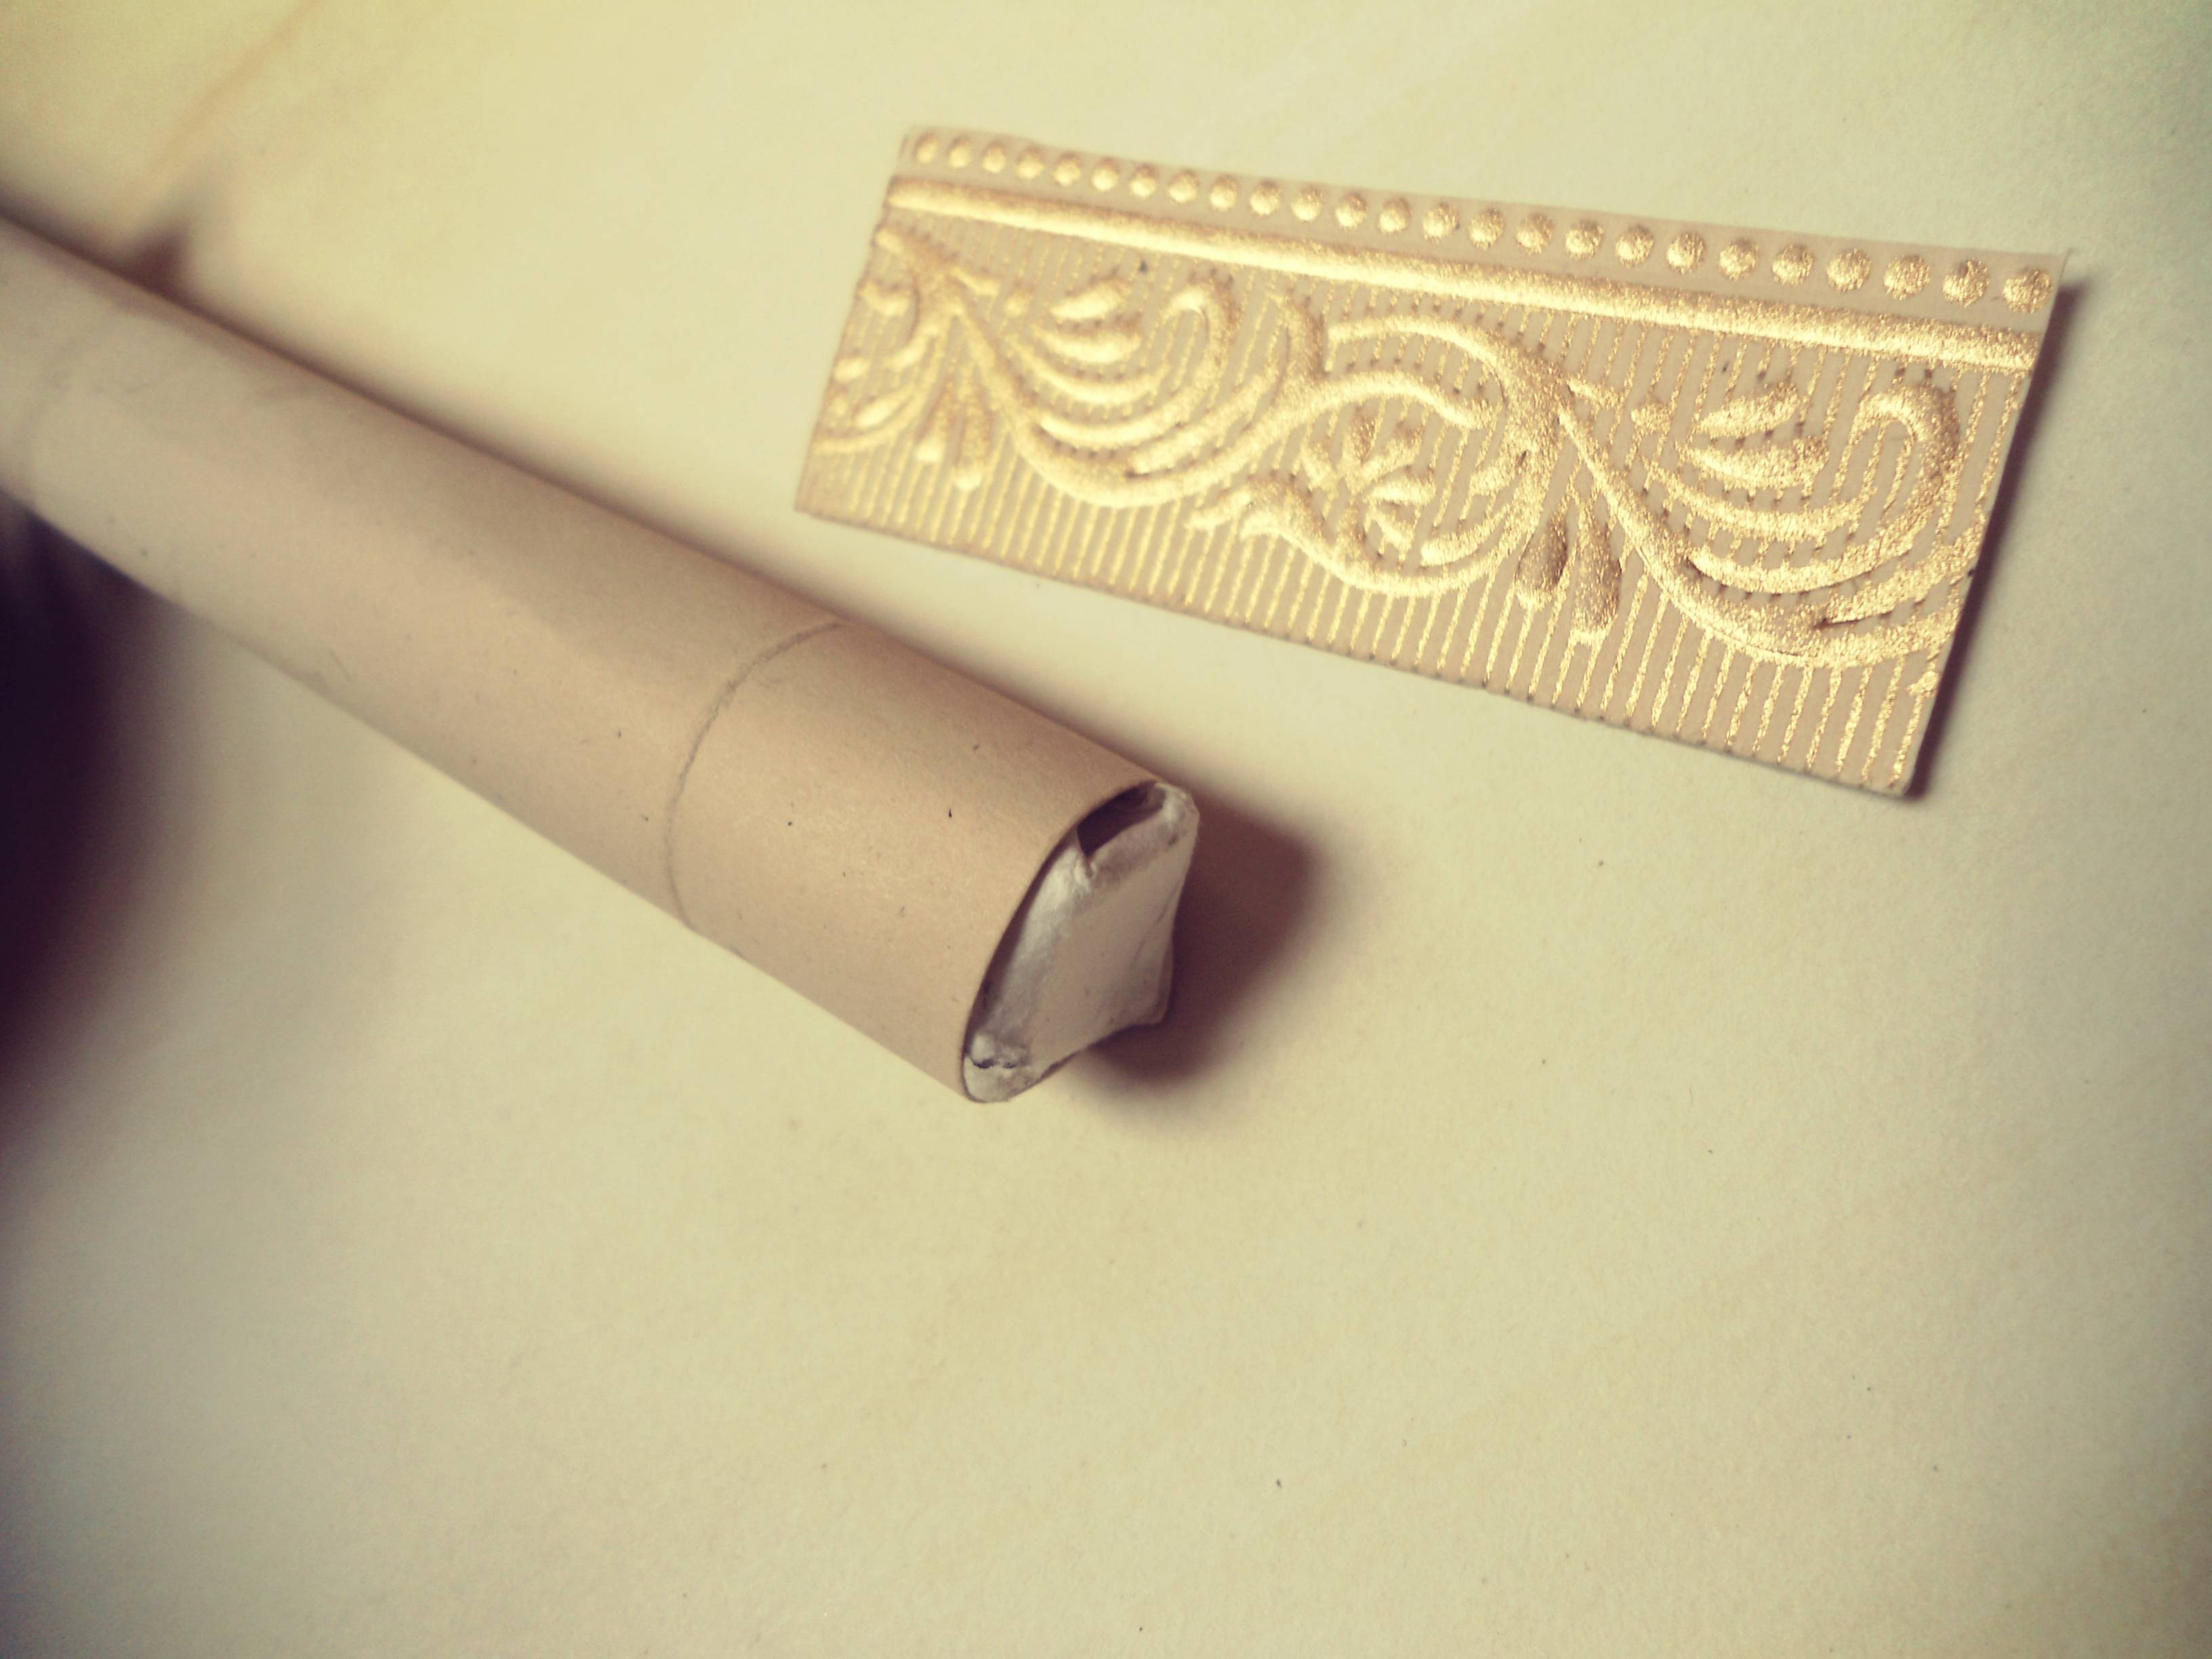 Picture of Decorate the Paper Stick With Decorative Paper Strip As Shown.